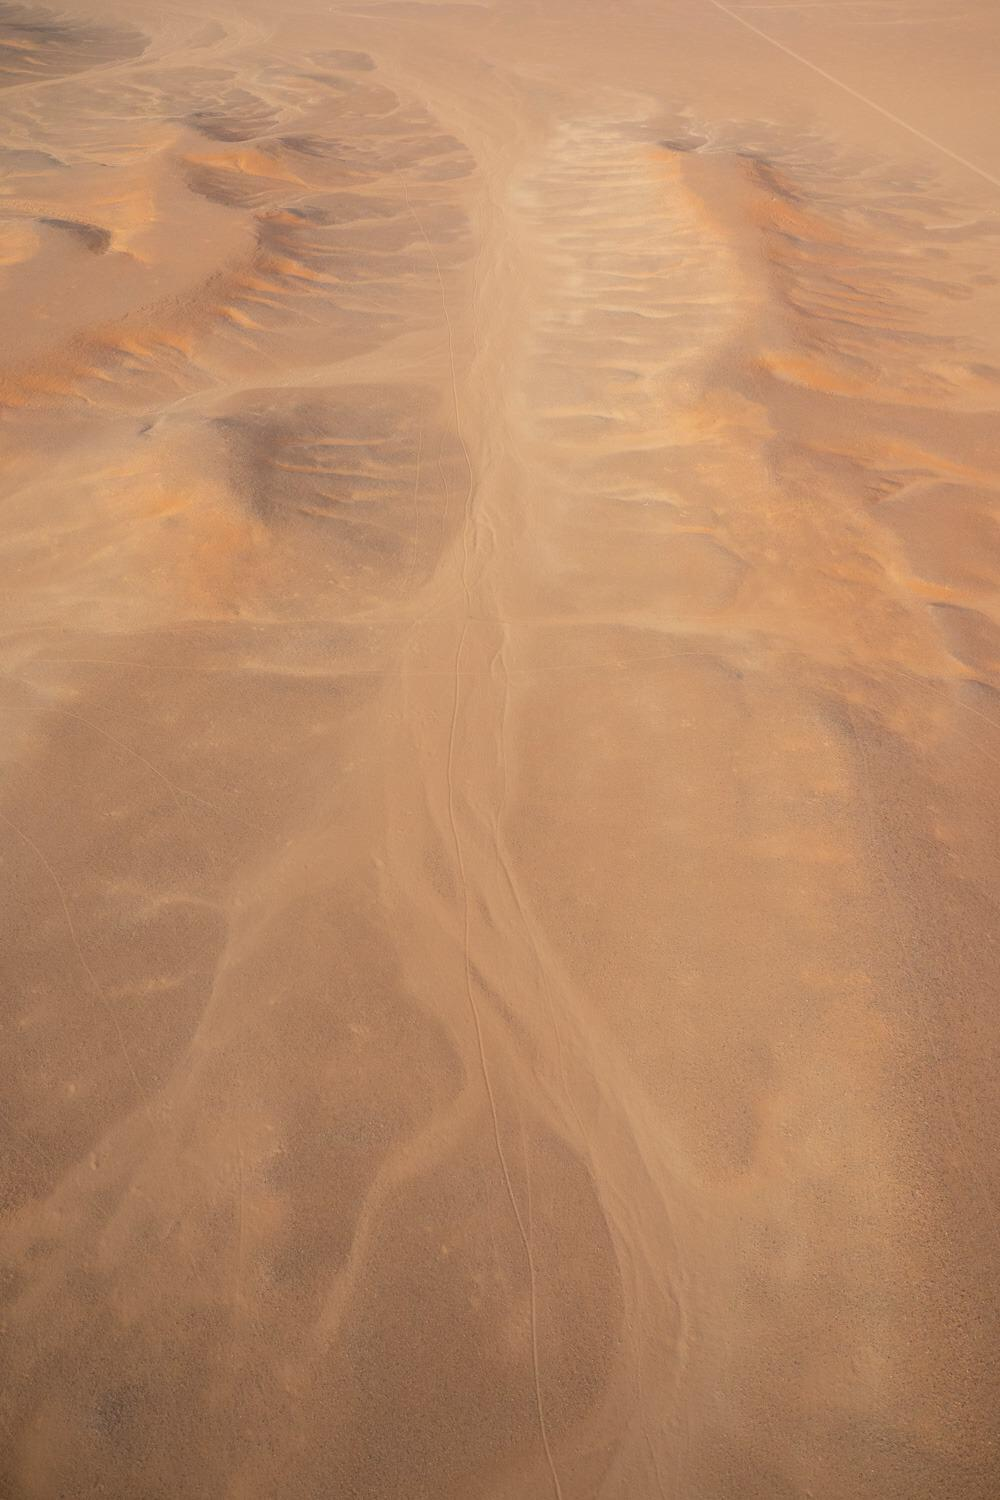 Aerial Photography in Namibia